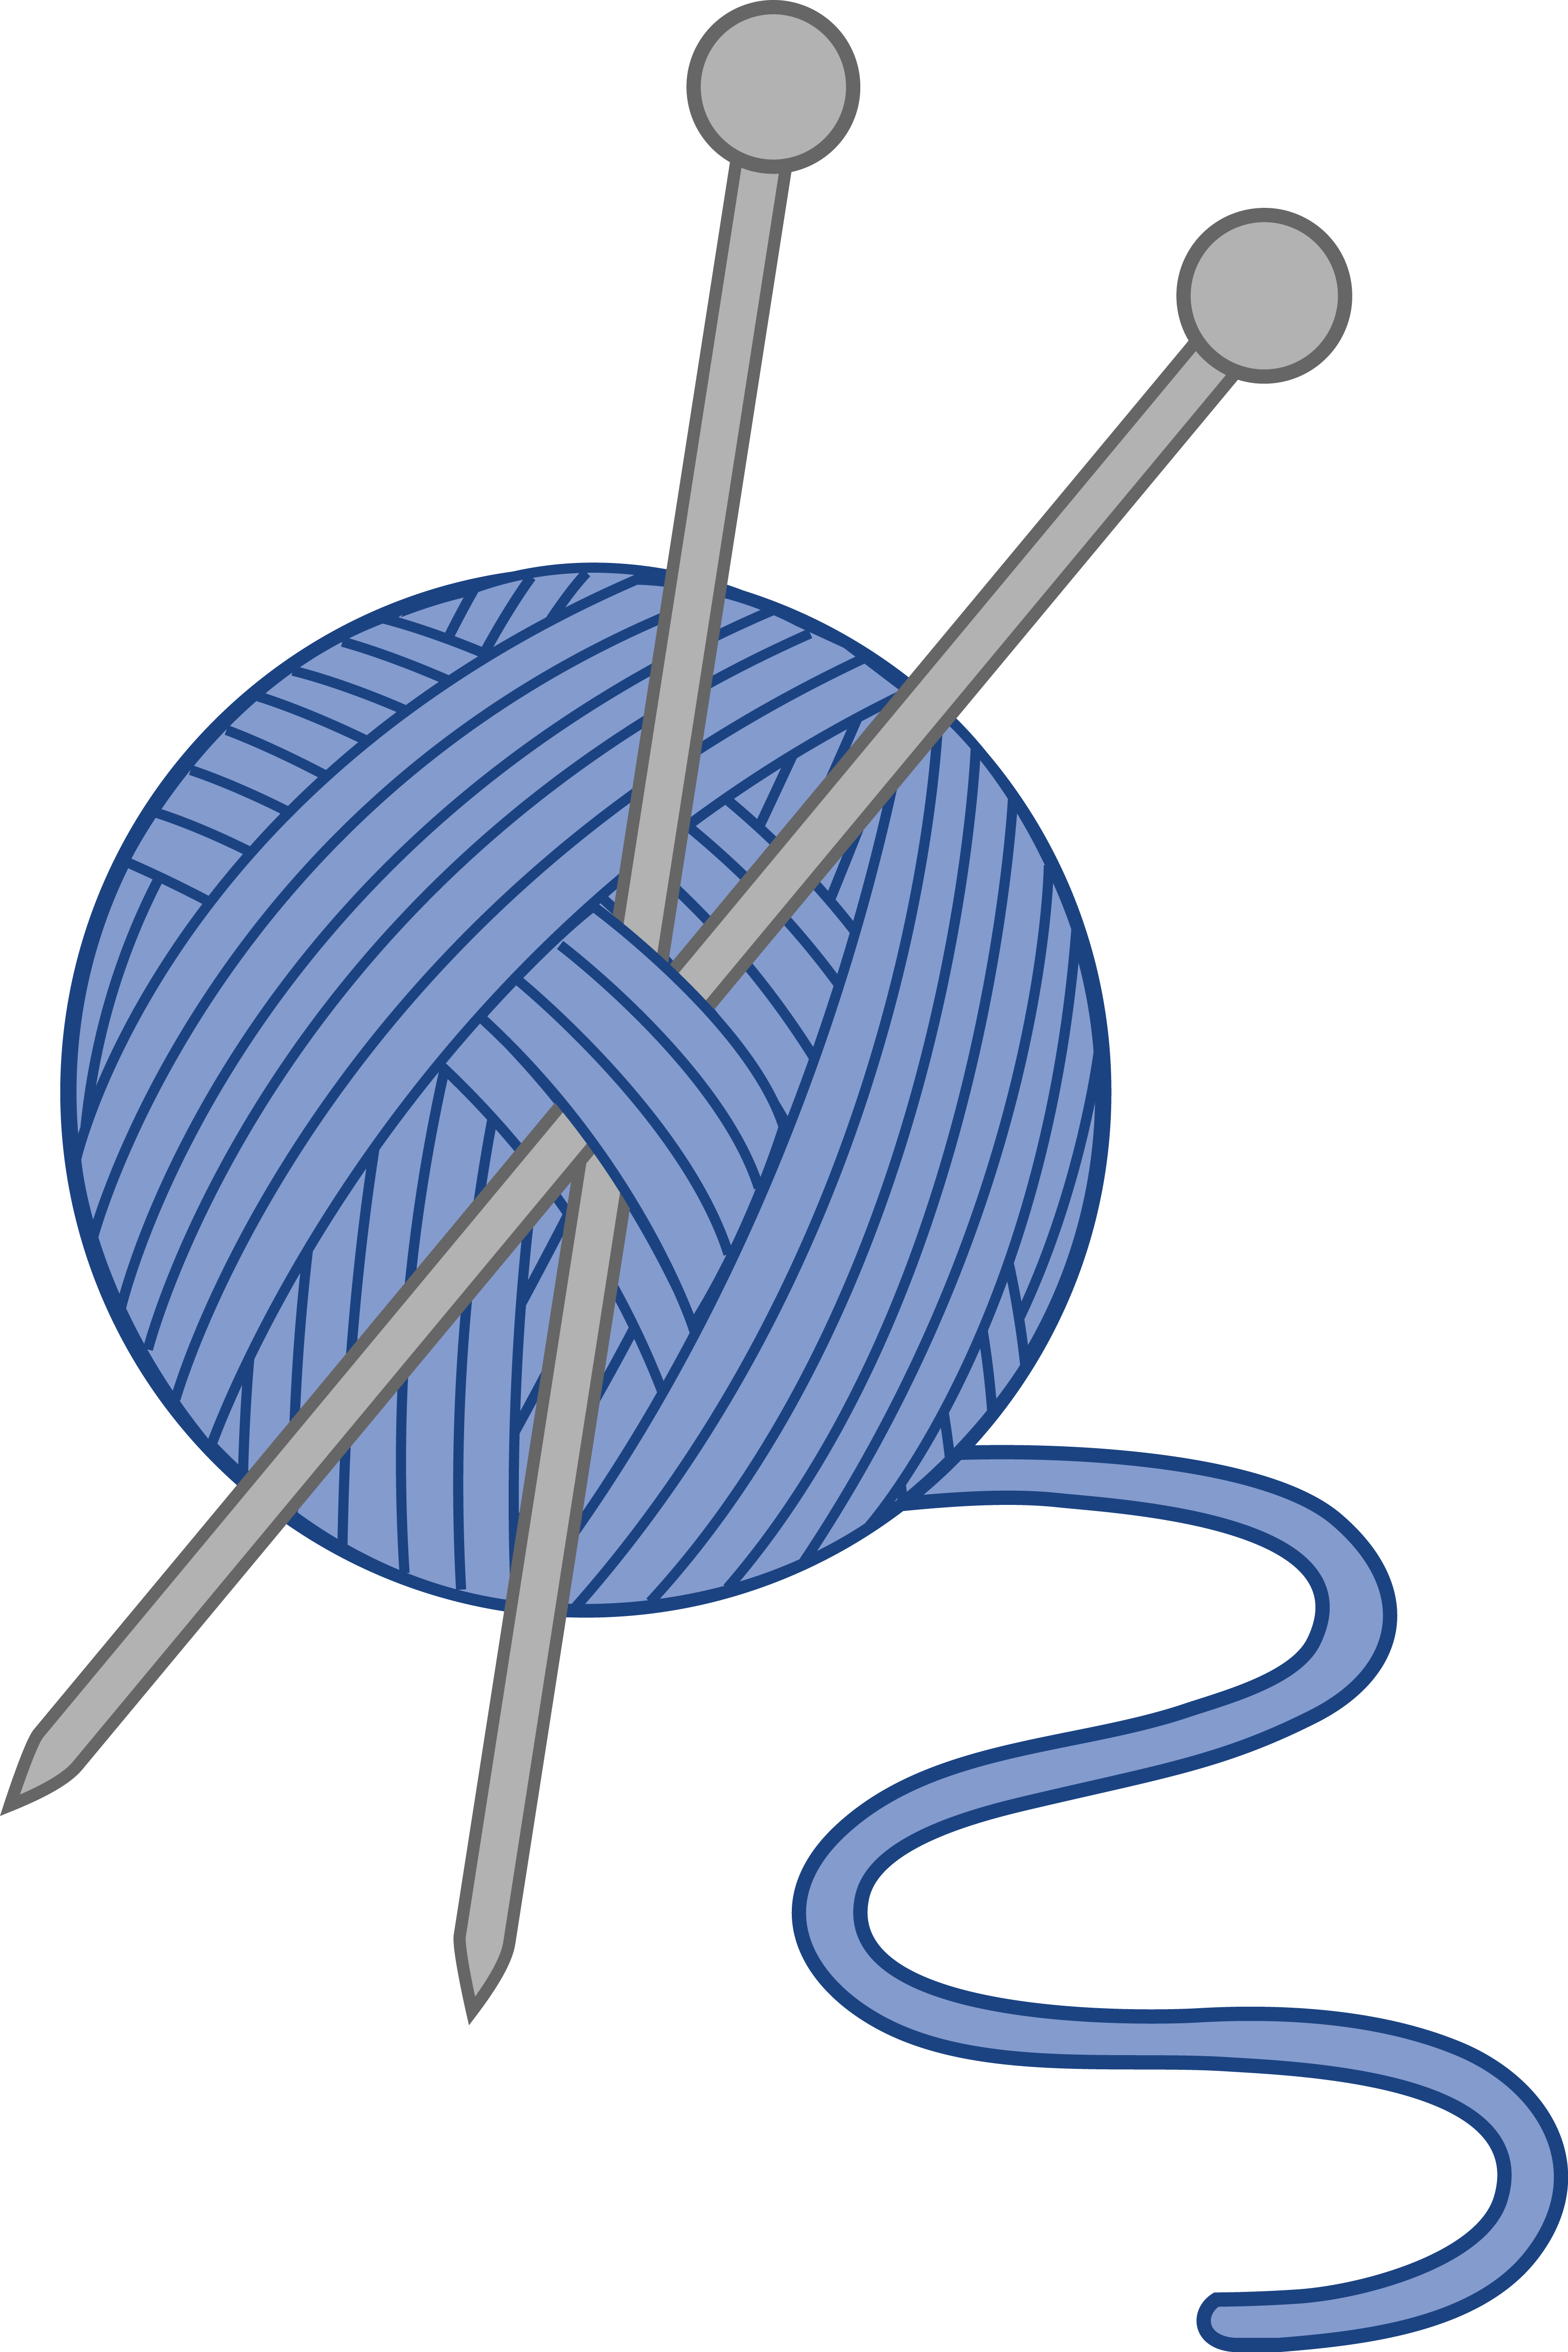 Free clipart images heart yarn knitting needles clip freeuse stock Knitting Needles Drawing at GetDrawings.com | Free for personal use ... clip freeuse stock